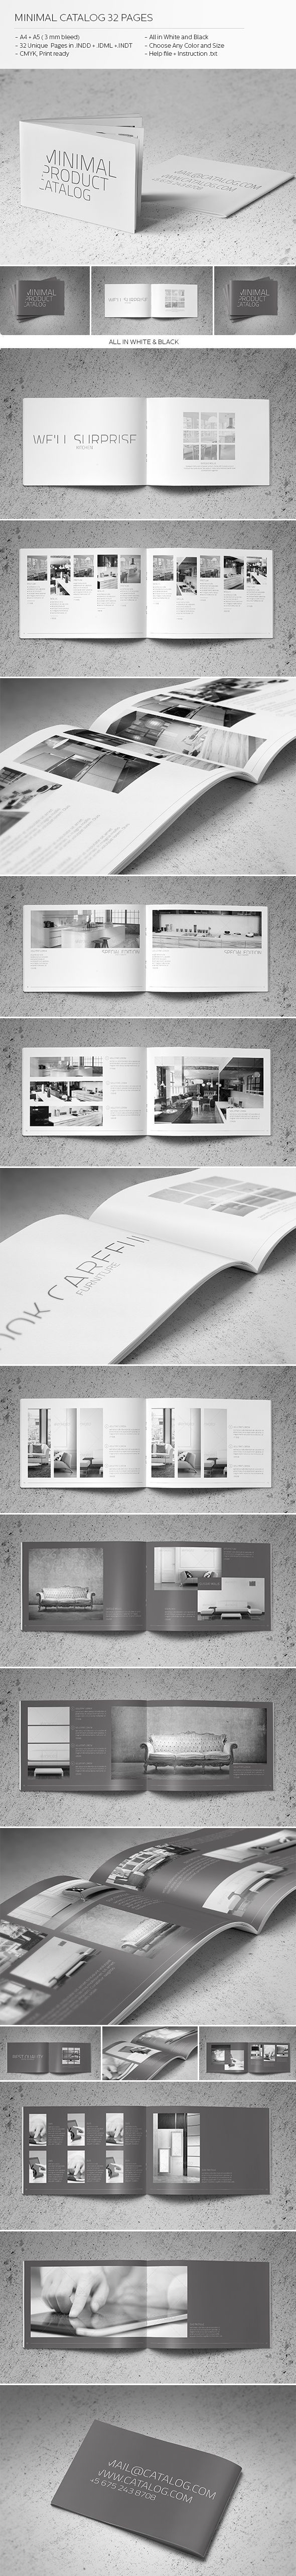 Black and white catalog design. More great design in Printing fly | http://www.printingfly.com/catalog-printing-los-angeles/